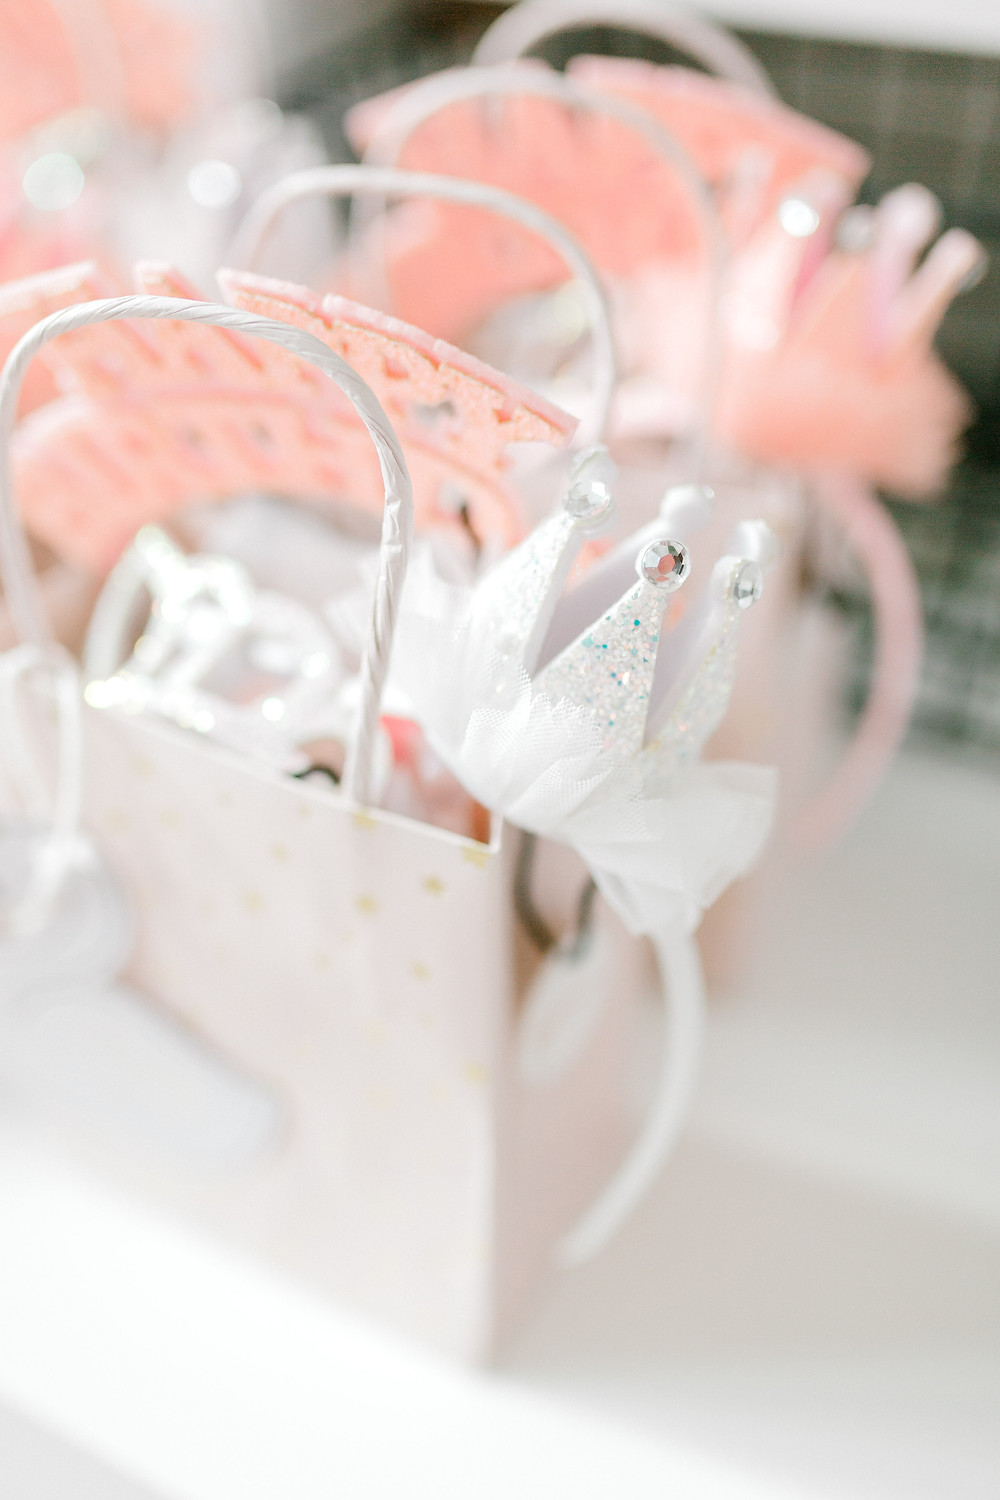 A white gift bag with gold stars, pink tulle, white crystal crown and a white swan attached to it at a nutcracker party.